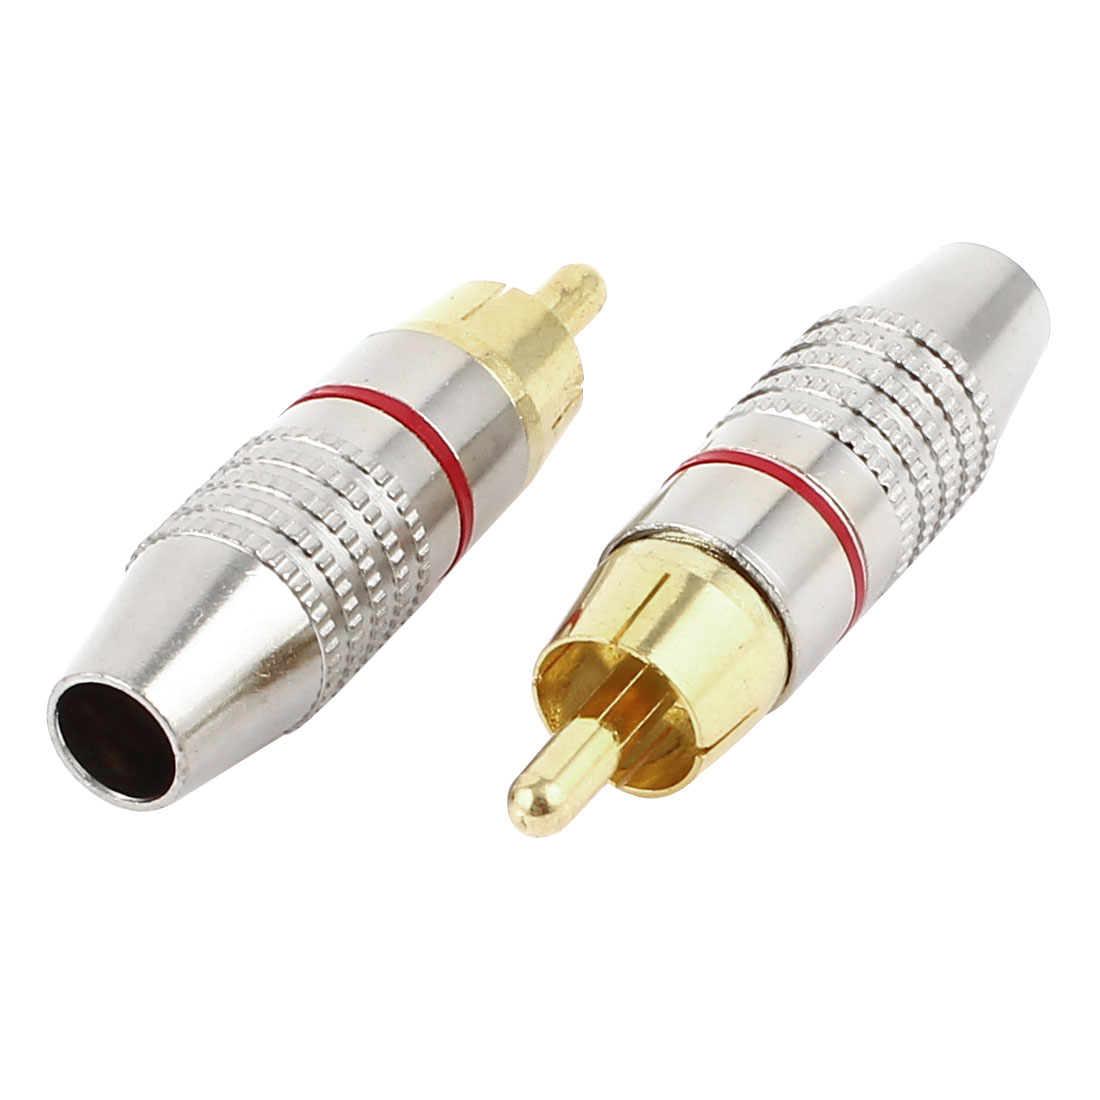 2pcs Metal RCA Male Adapter Audio Coaxial Cable Solderless Connector Adapter